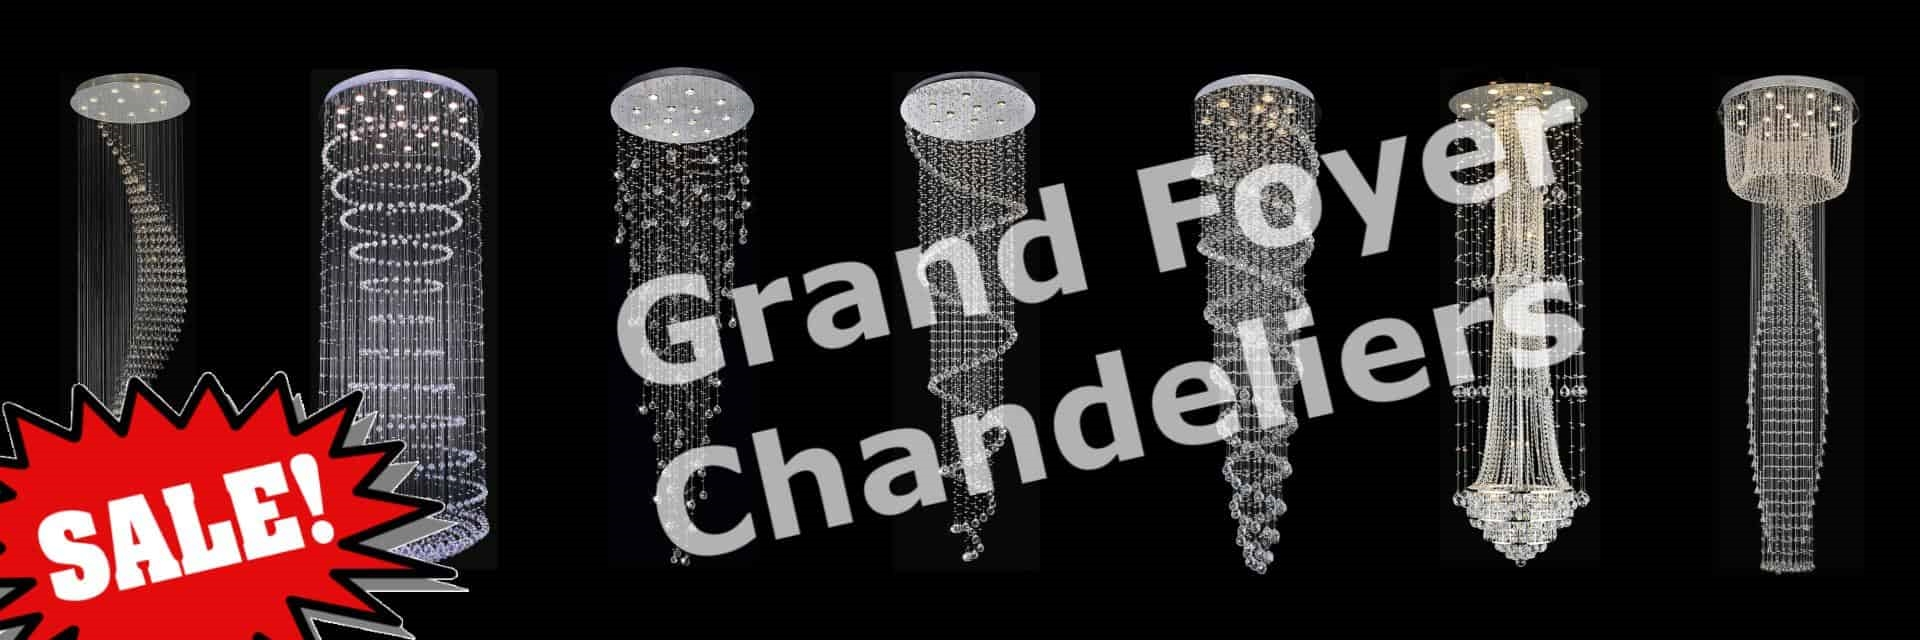 Crystal Grand Foyer Chandeliers. Extra Large Size. Staircase Chandeliers